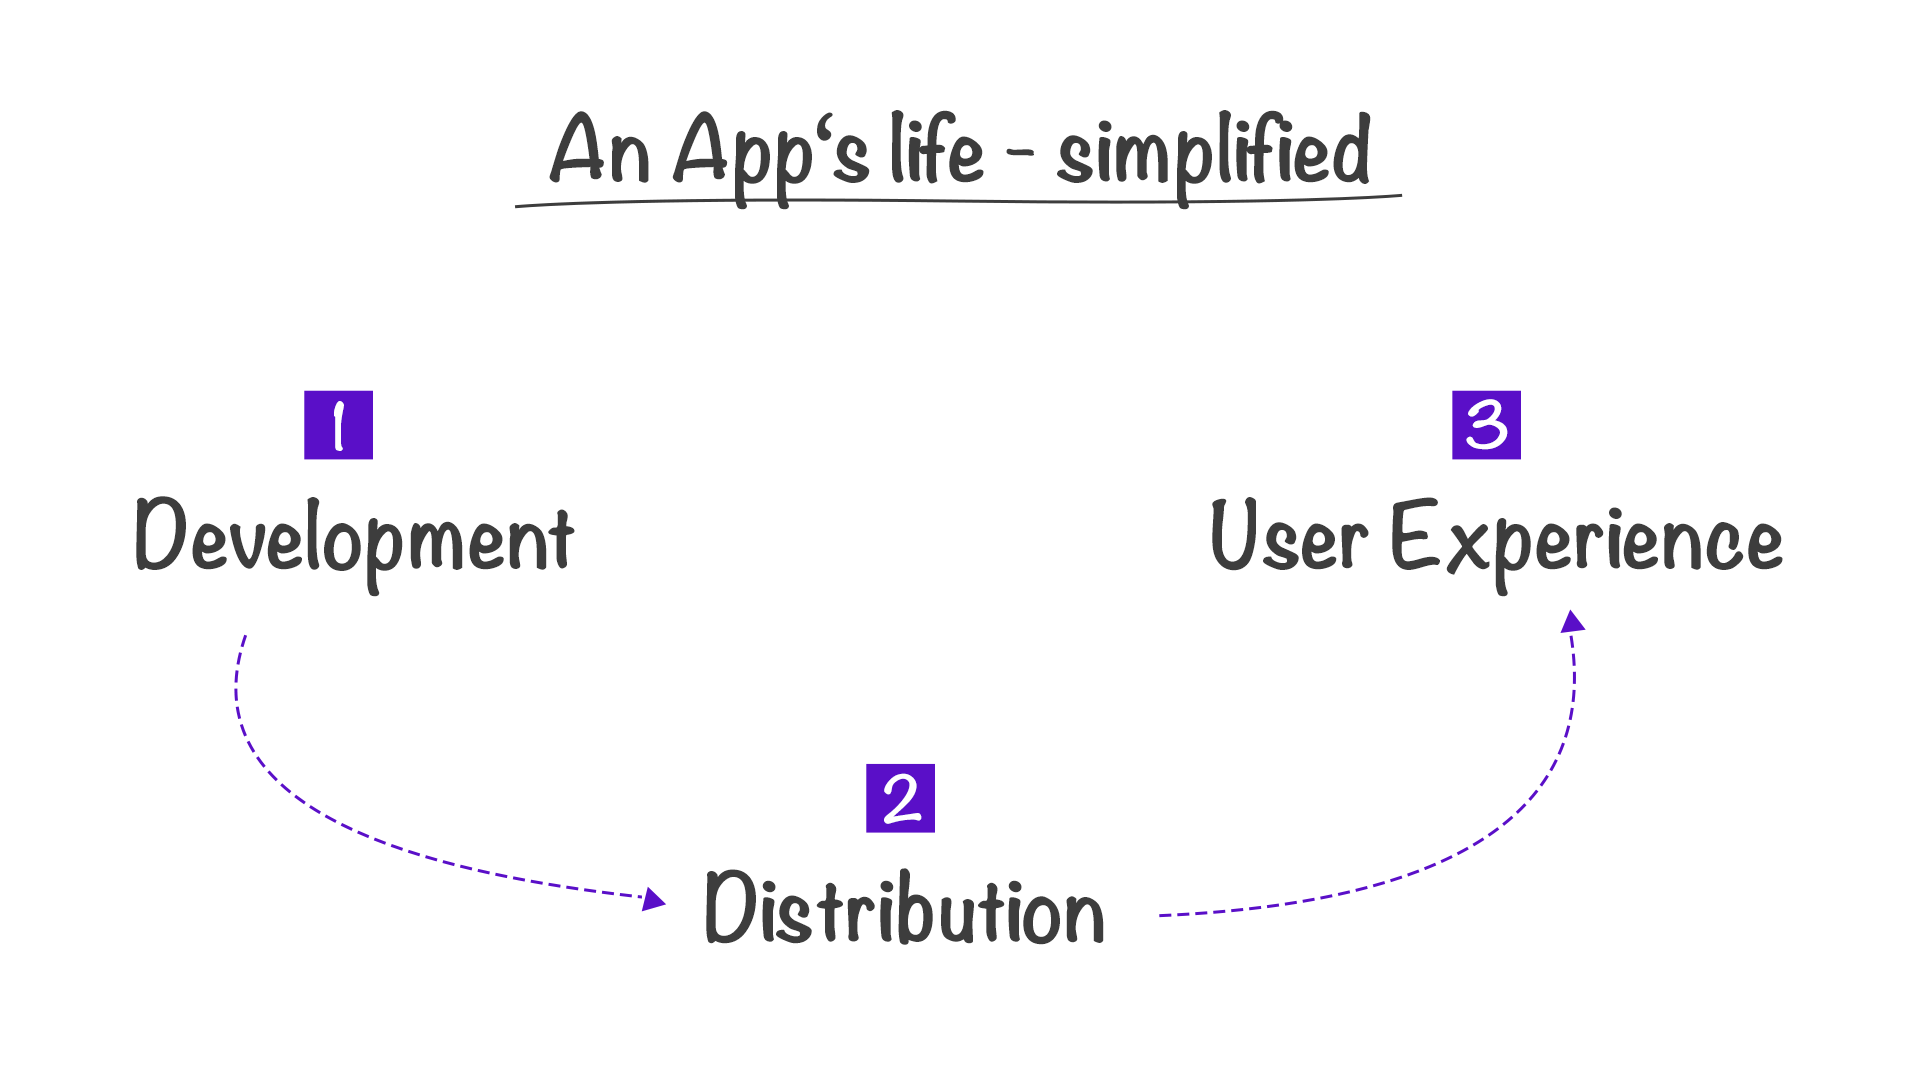 The life of an app—simplified